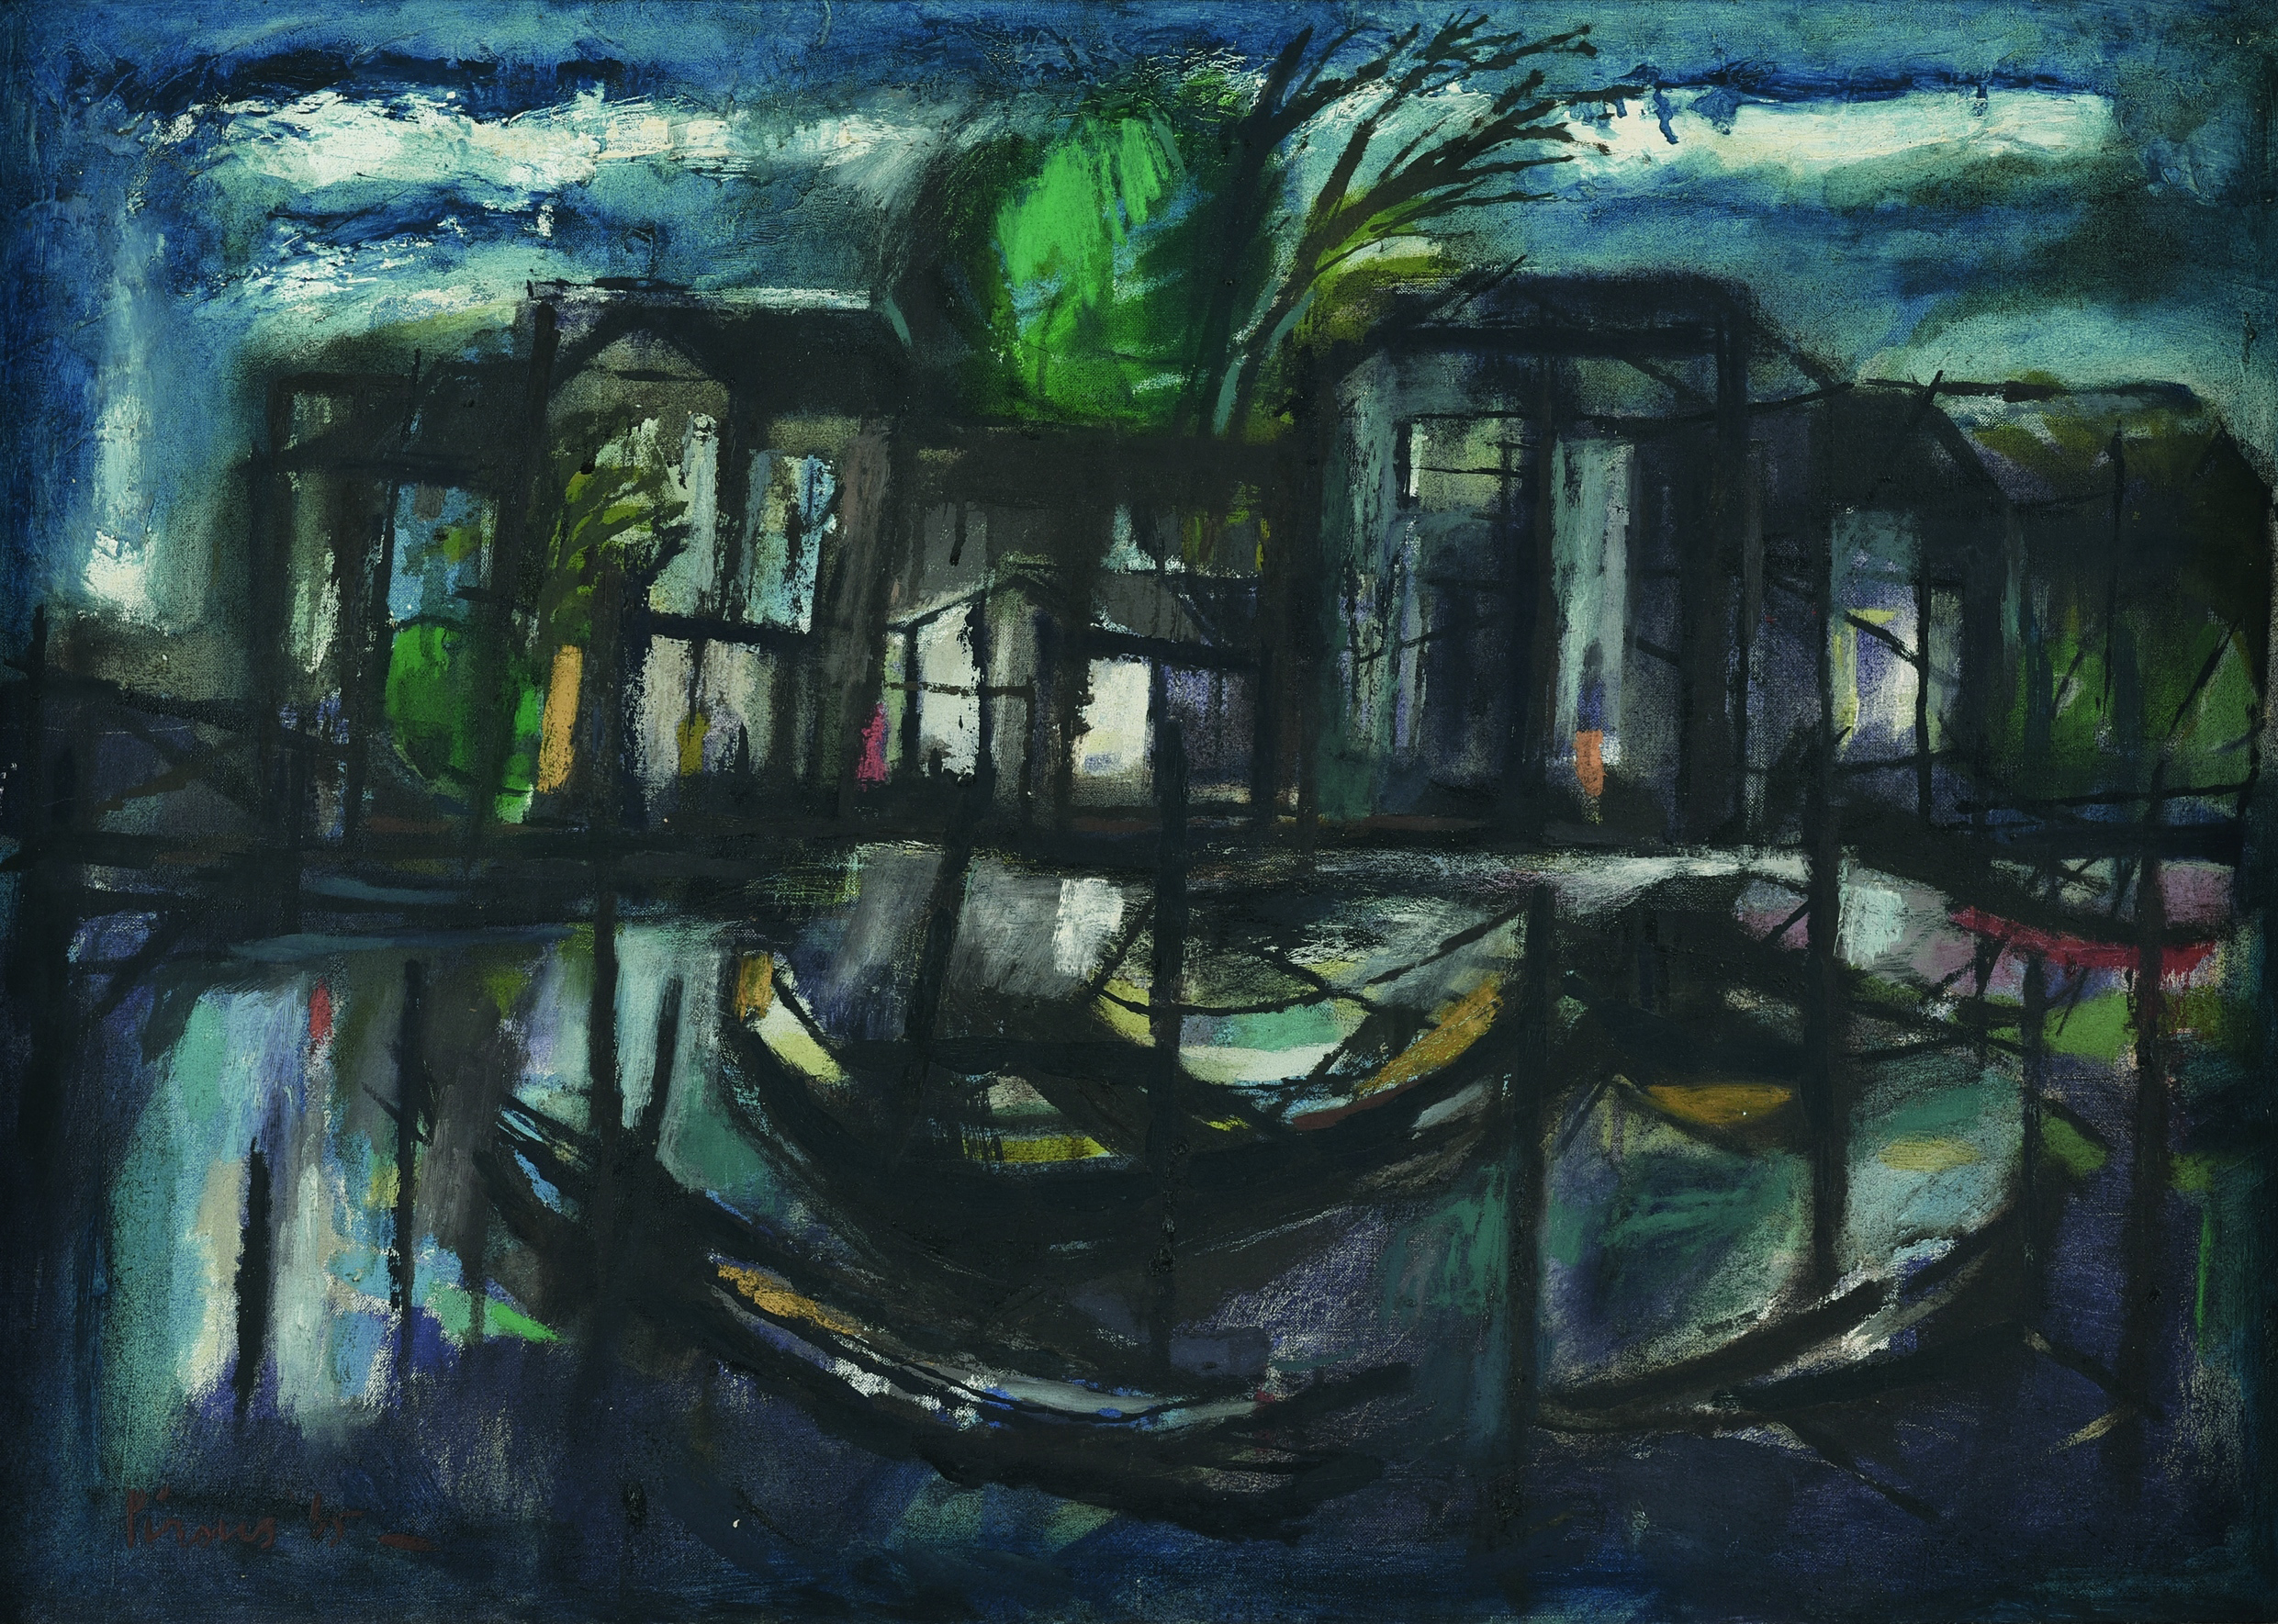 A.D. Pirous, House by the River, 1965, oil on canvas, 50 X 70 cm